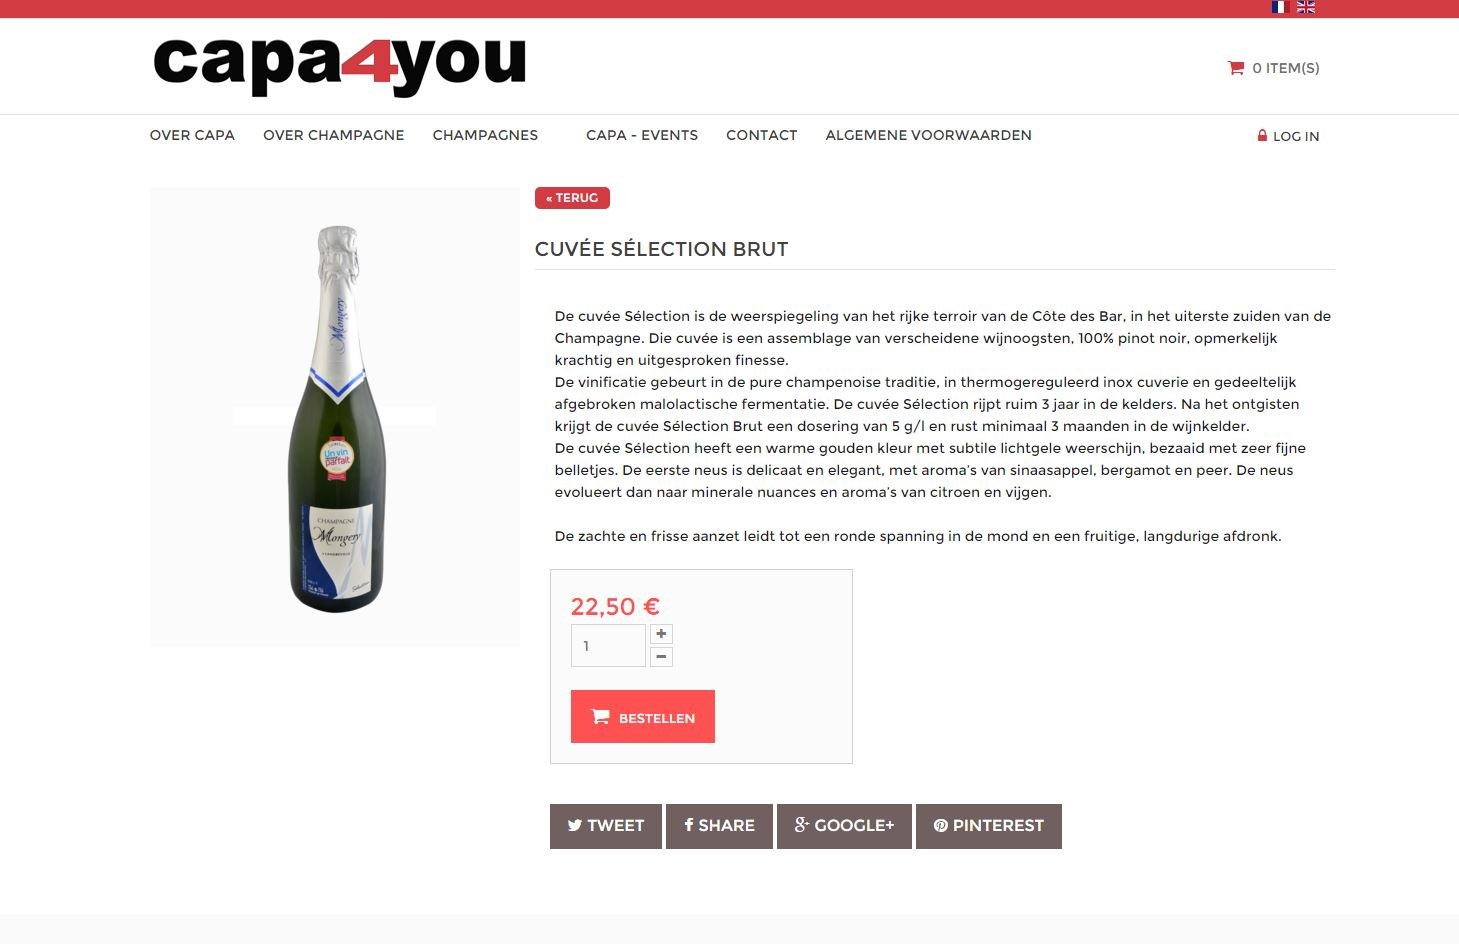 Capa4You Champagne 2